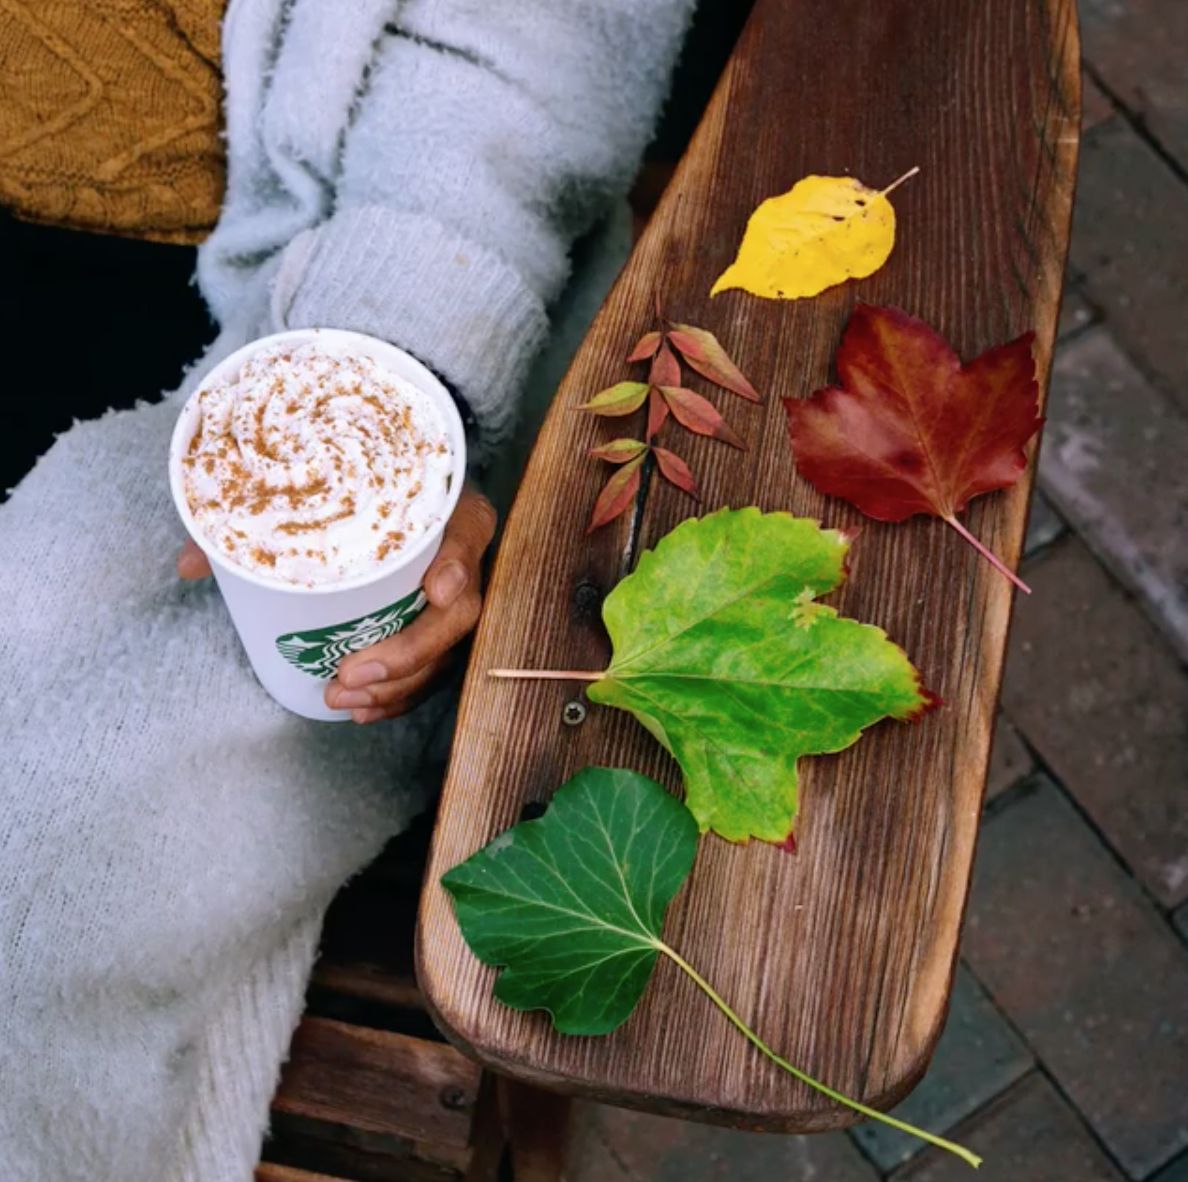 model holding starbucks hot drink with whipped cream in their hand